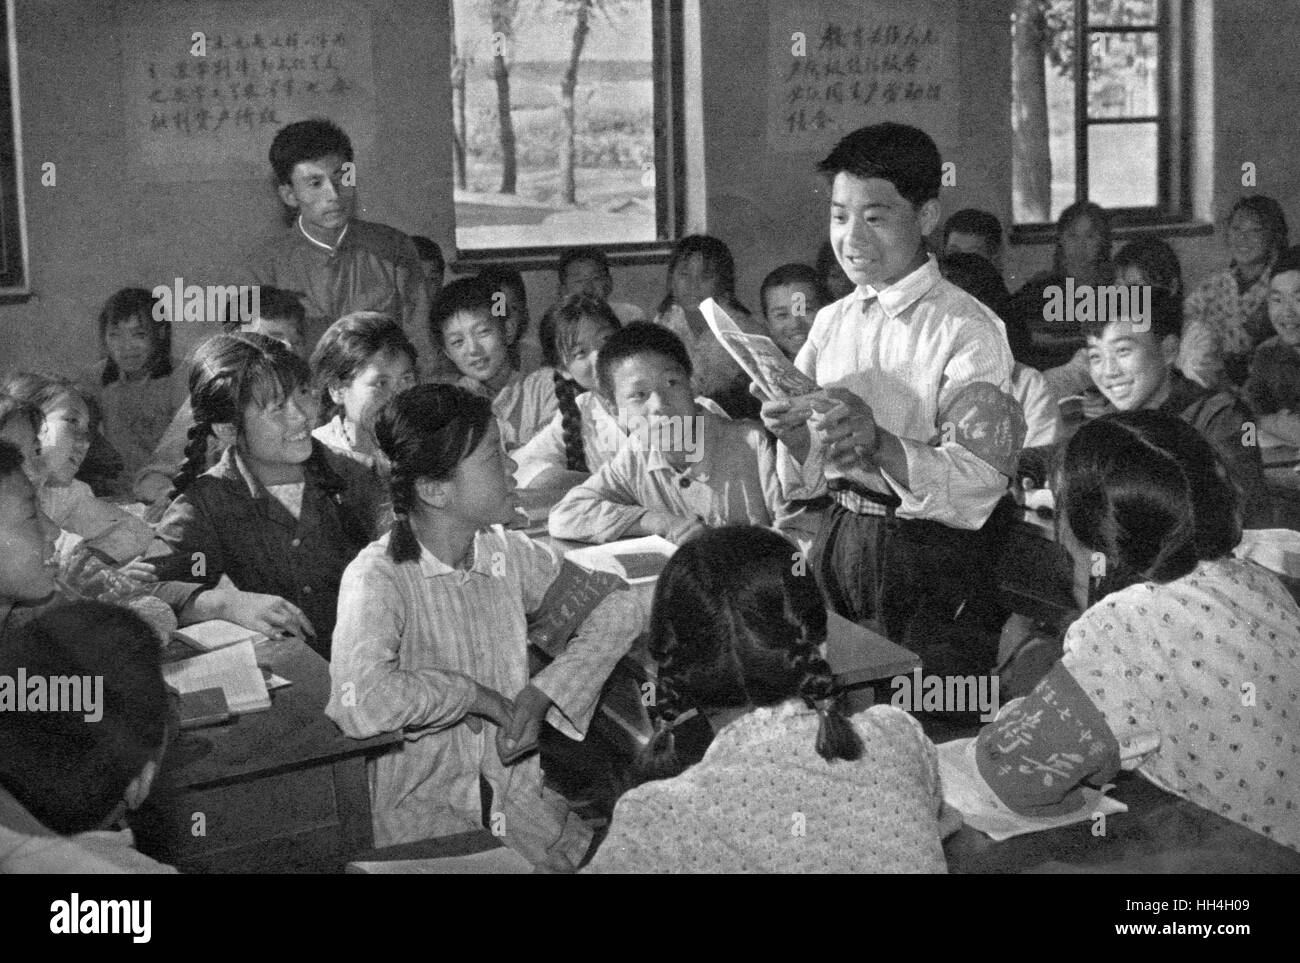 Children in a classroom in Communist China, one of them standing up to speak.  During the Cultural Revolution there - Stock Image